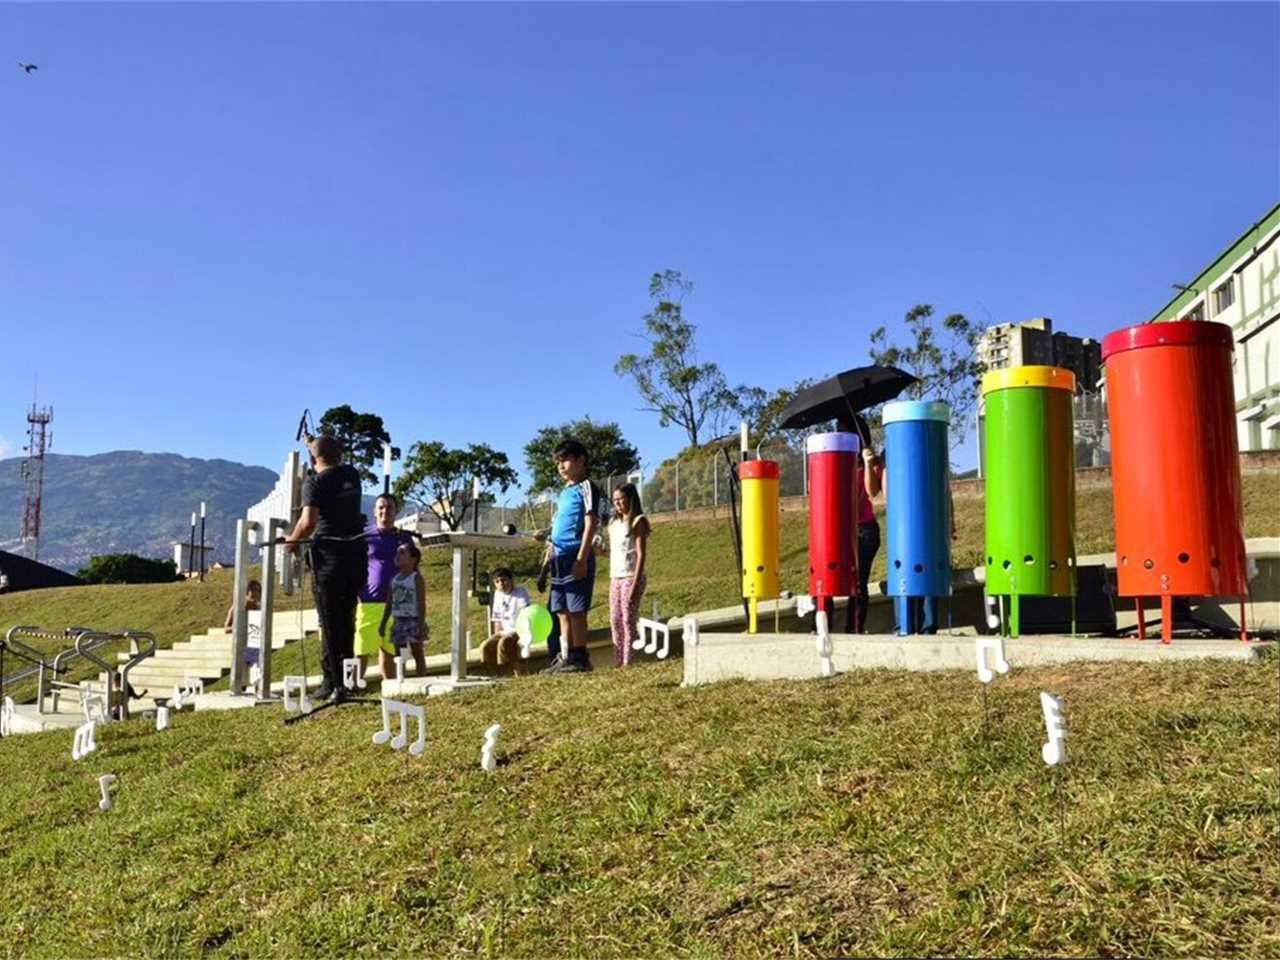 Project update December 2015 – Articulated Site: Water reservoirs as public park, Medellín, Colombia